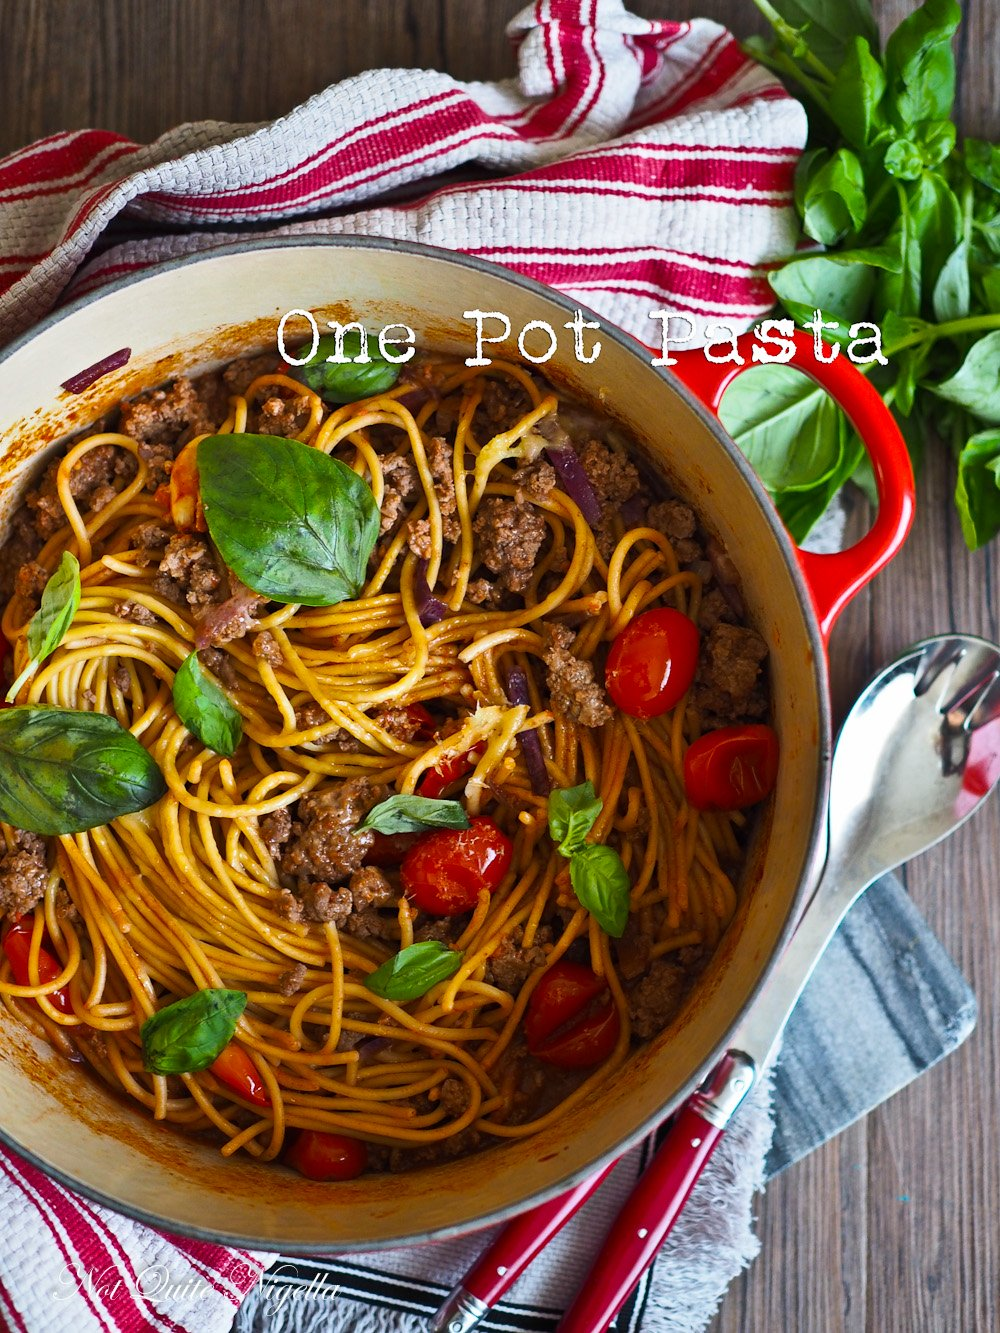 Now This One Pot Pasta Is The Definition Of Simple Just One Pot To Do Everything And A Very Simple Method You Could Even Make A Vegetarian Version Of This